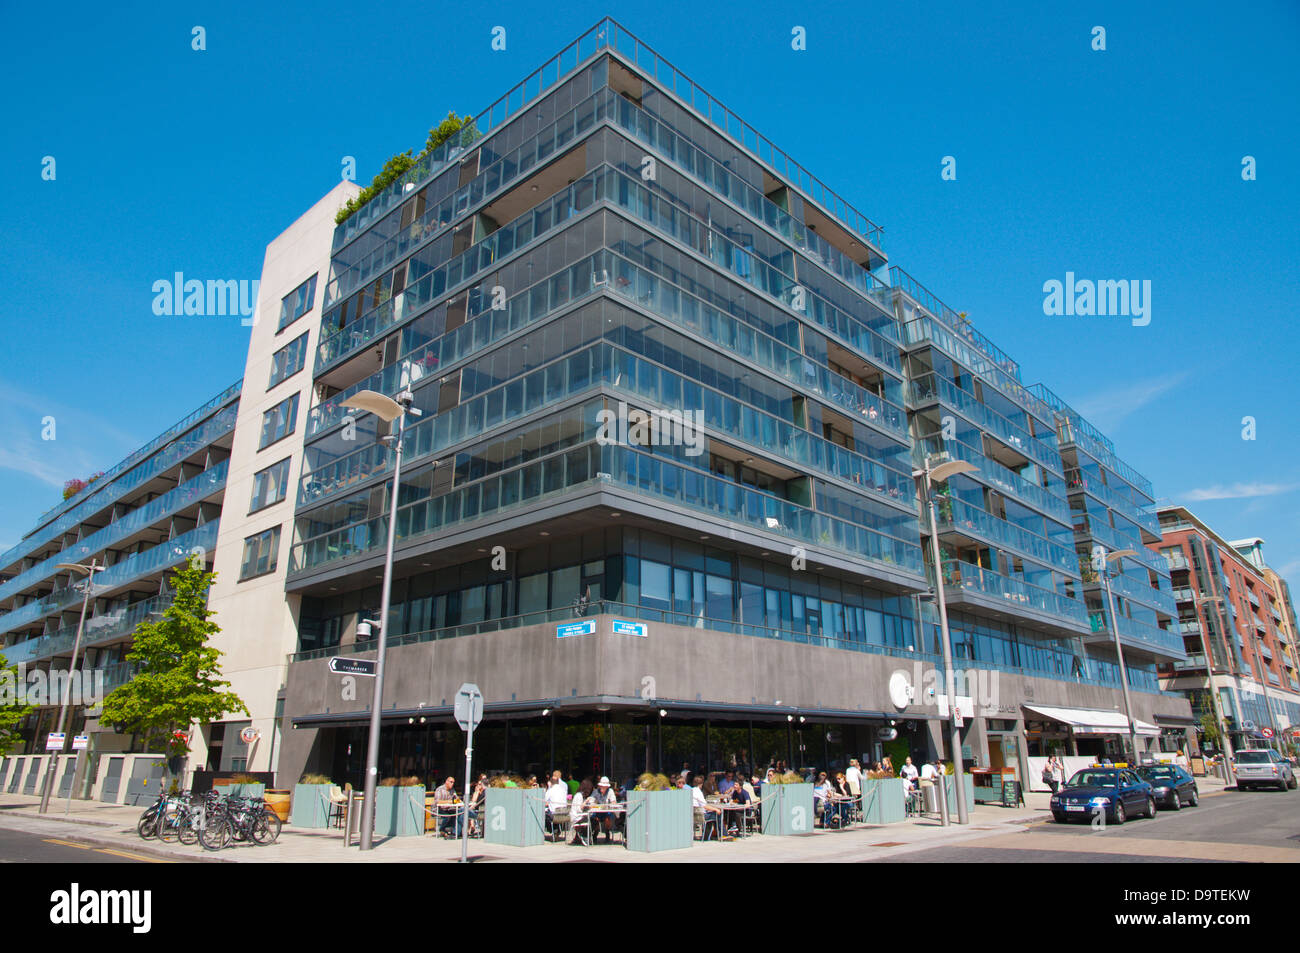 South Dock House building Hanover Quay by Grand Canal Docks in Docklands former harbour area central Dublin Ireland - Stock Image